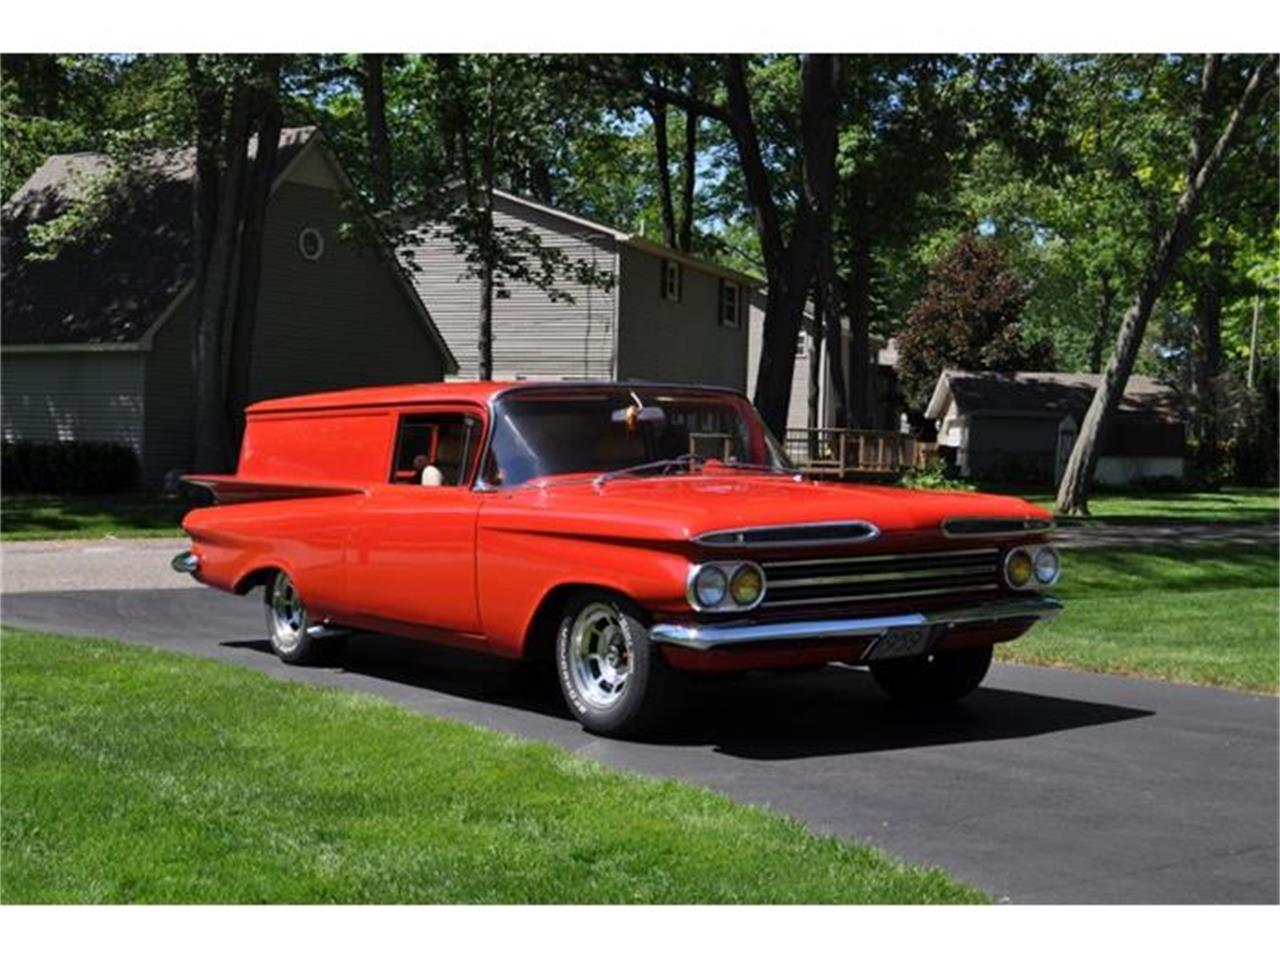 For Sale: 1959 Chevrolet Sedan Delivery in Livonia, Michigan